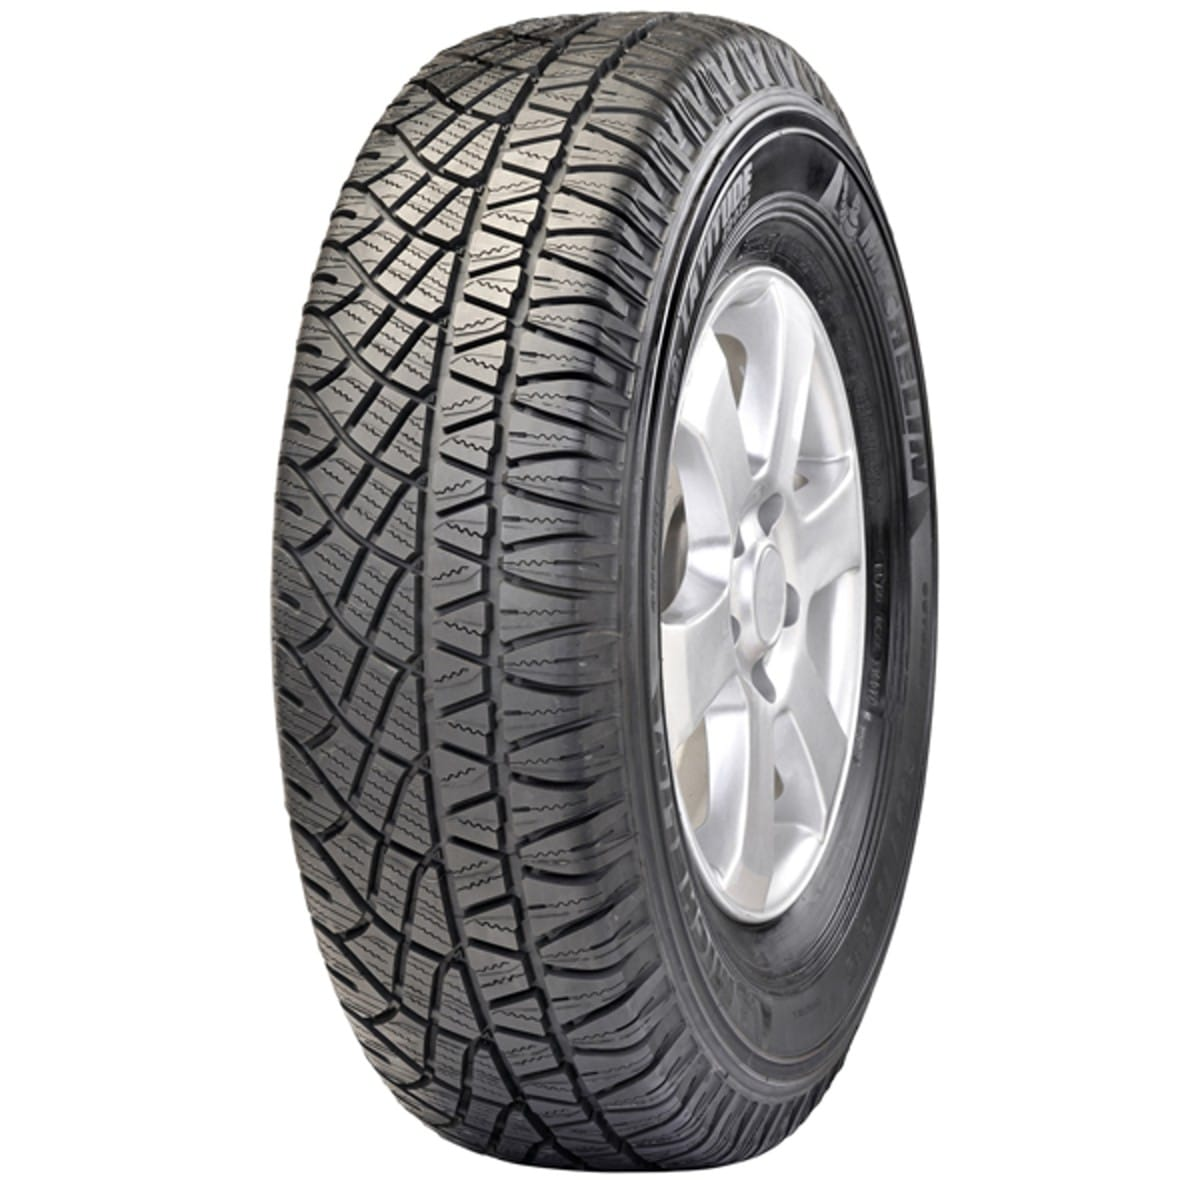 Gomme 4x4 Suv Michelin 225/55 R17 101H Latitude Cross XL Estivo